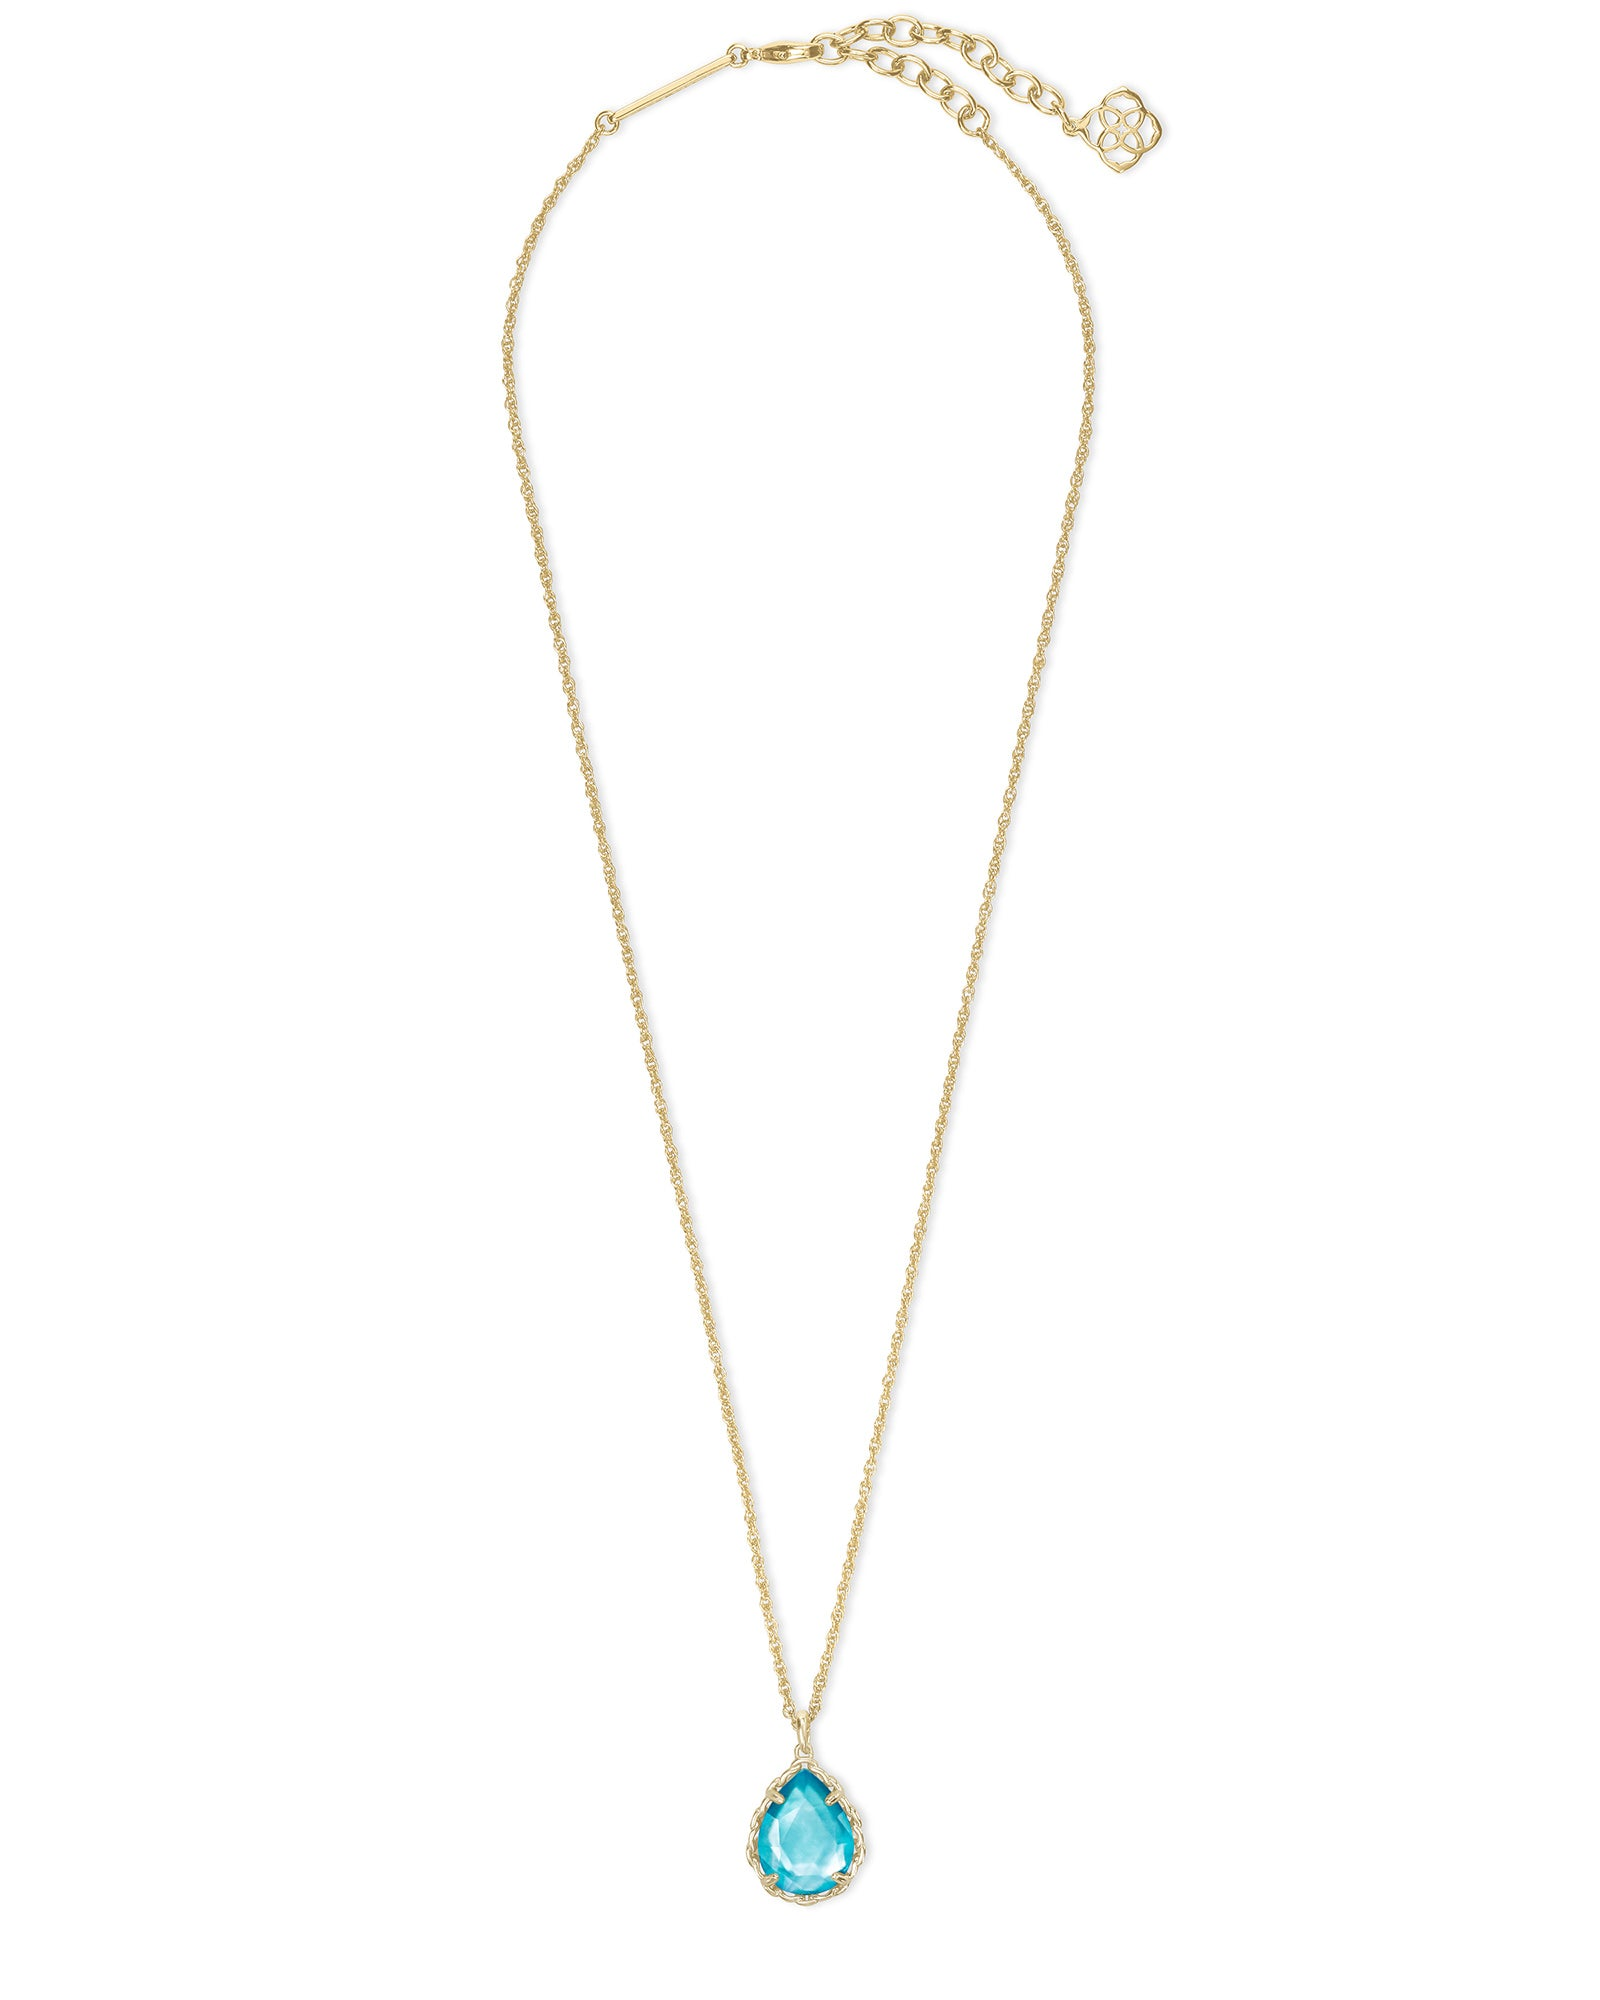 Macrame Dee Gold Necklace in Aqua Illusion